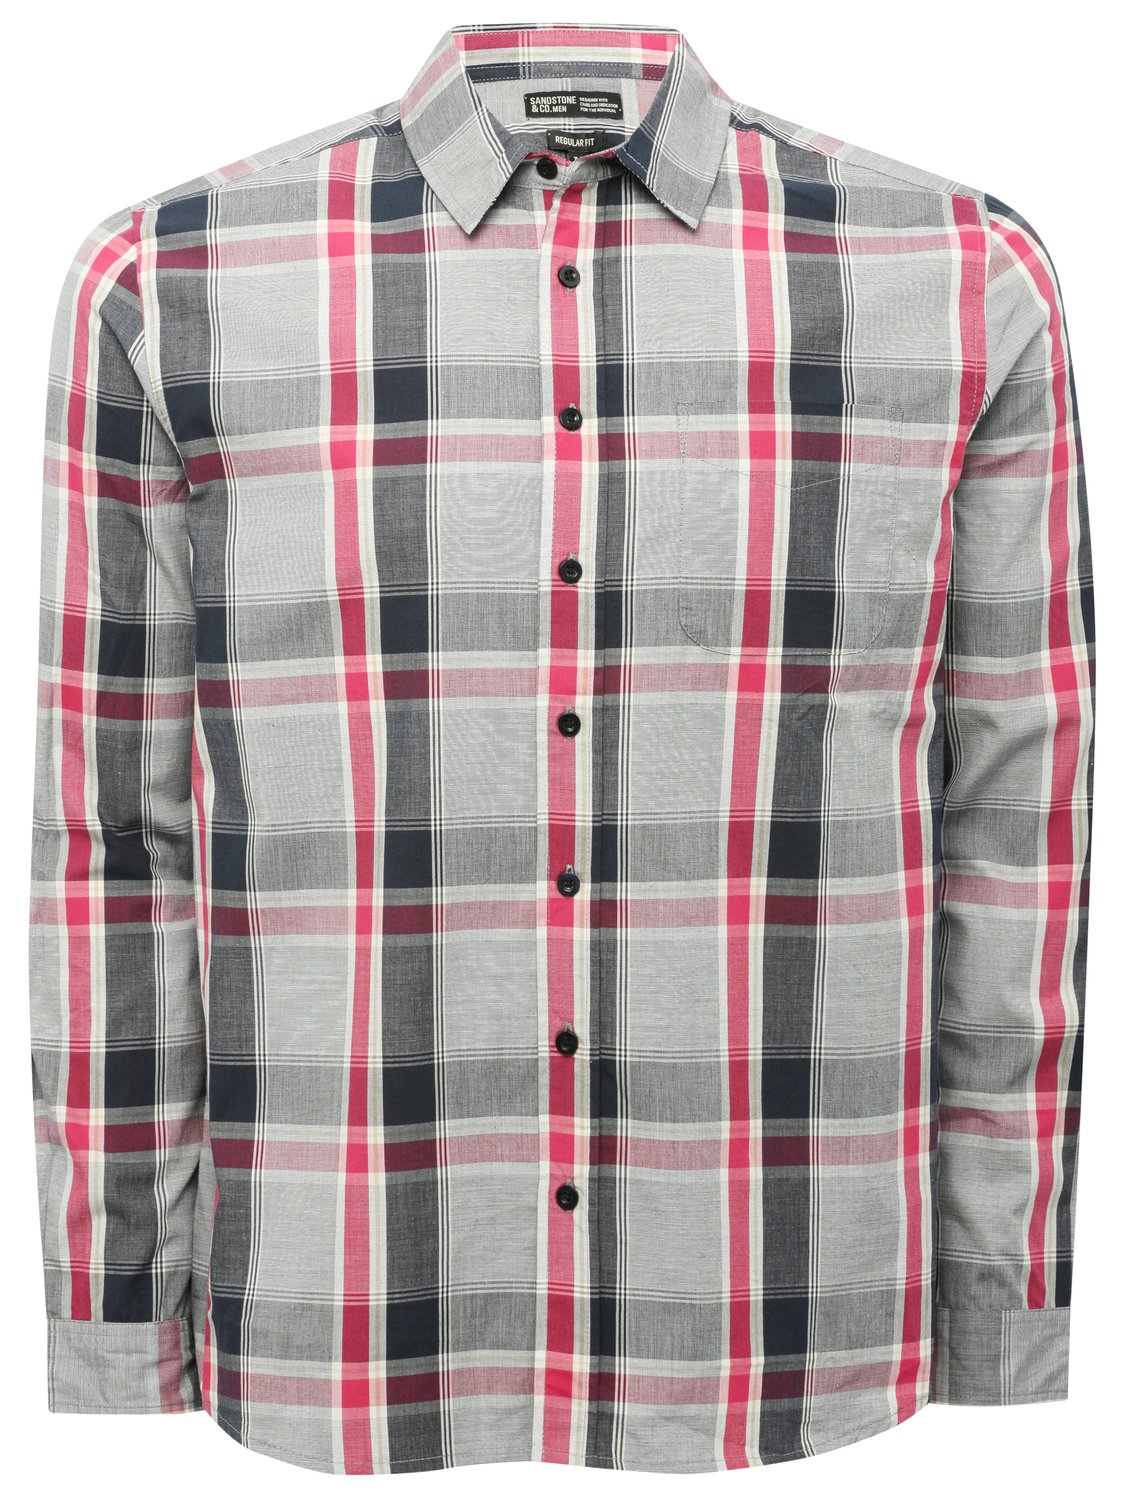 Image of Mens long sleeve check pattern cotton button up collar smart casual shirt - Grey